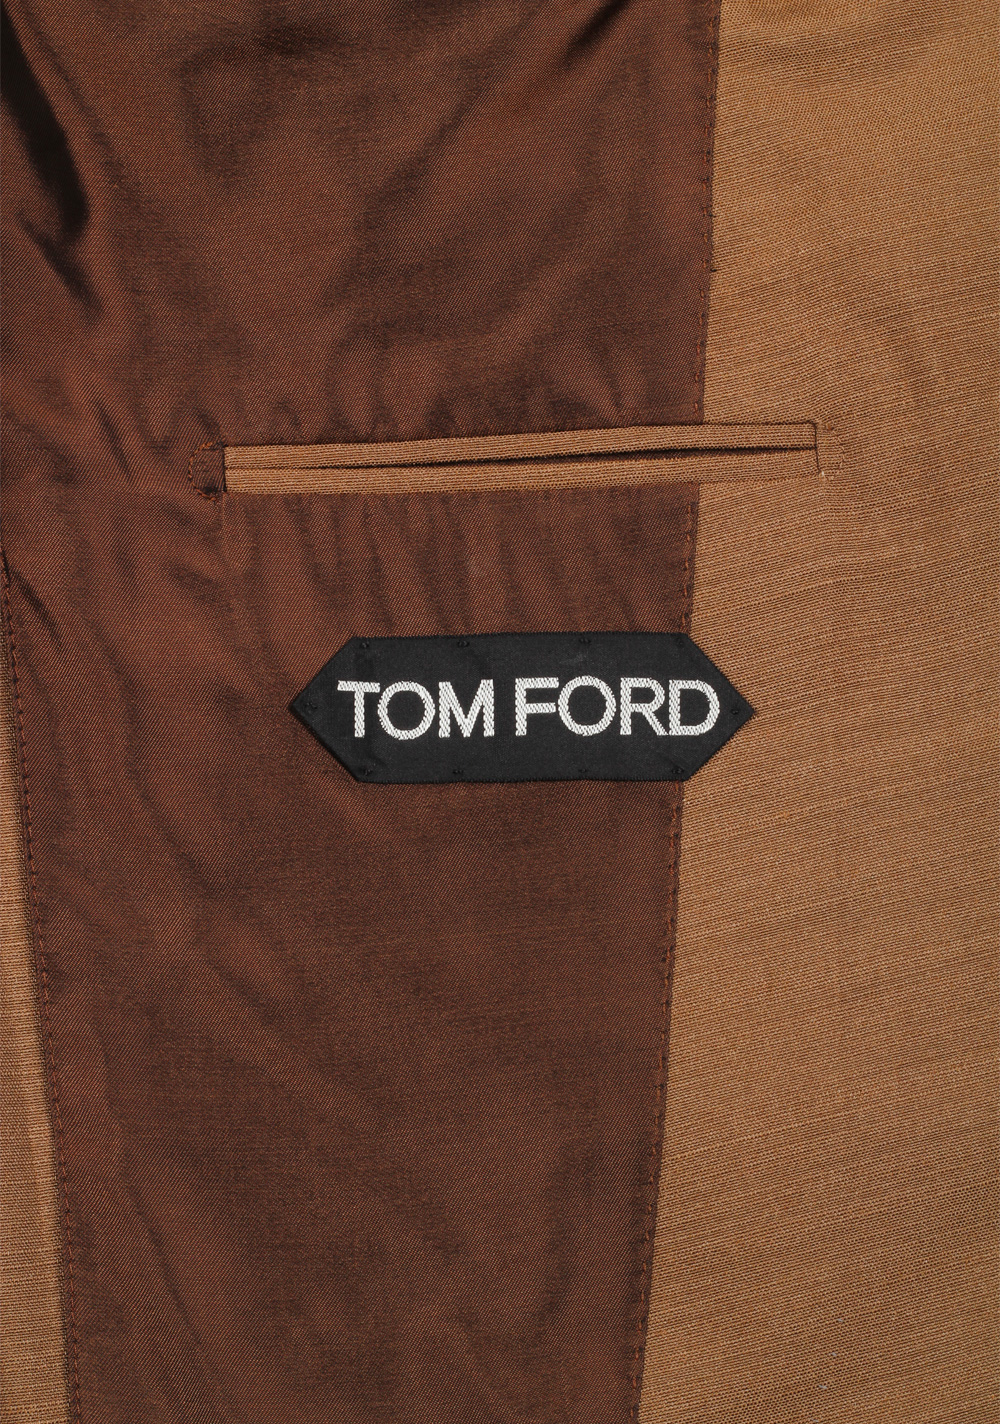 TOM FORD Atticus Brown Suit Size 46 / 36R U.S. In Silk | Costume Limité